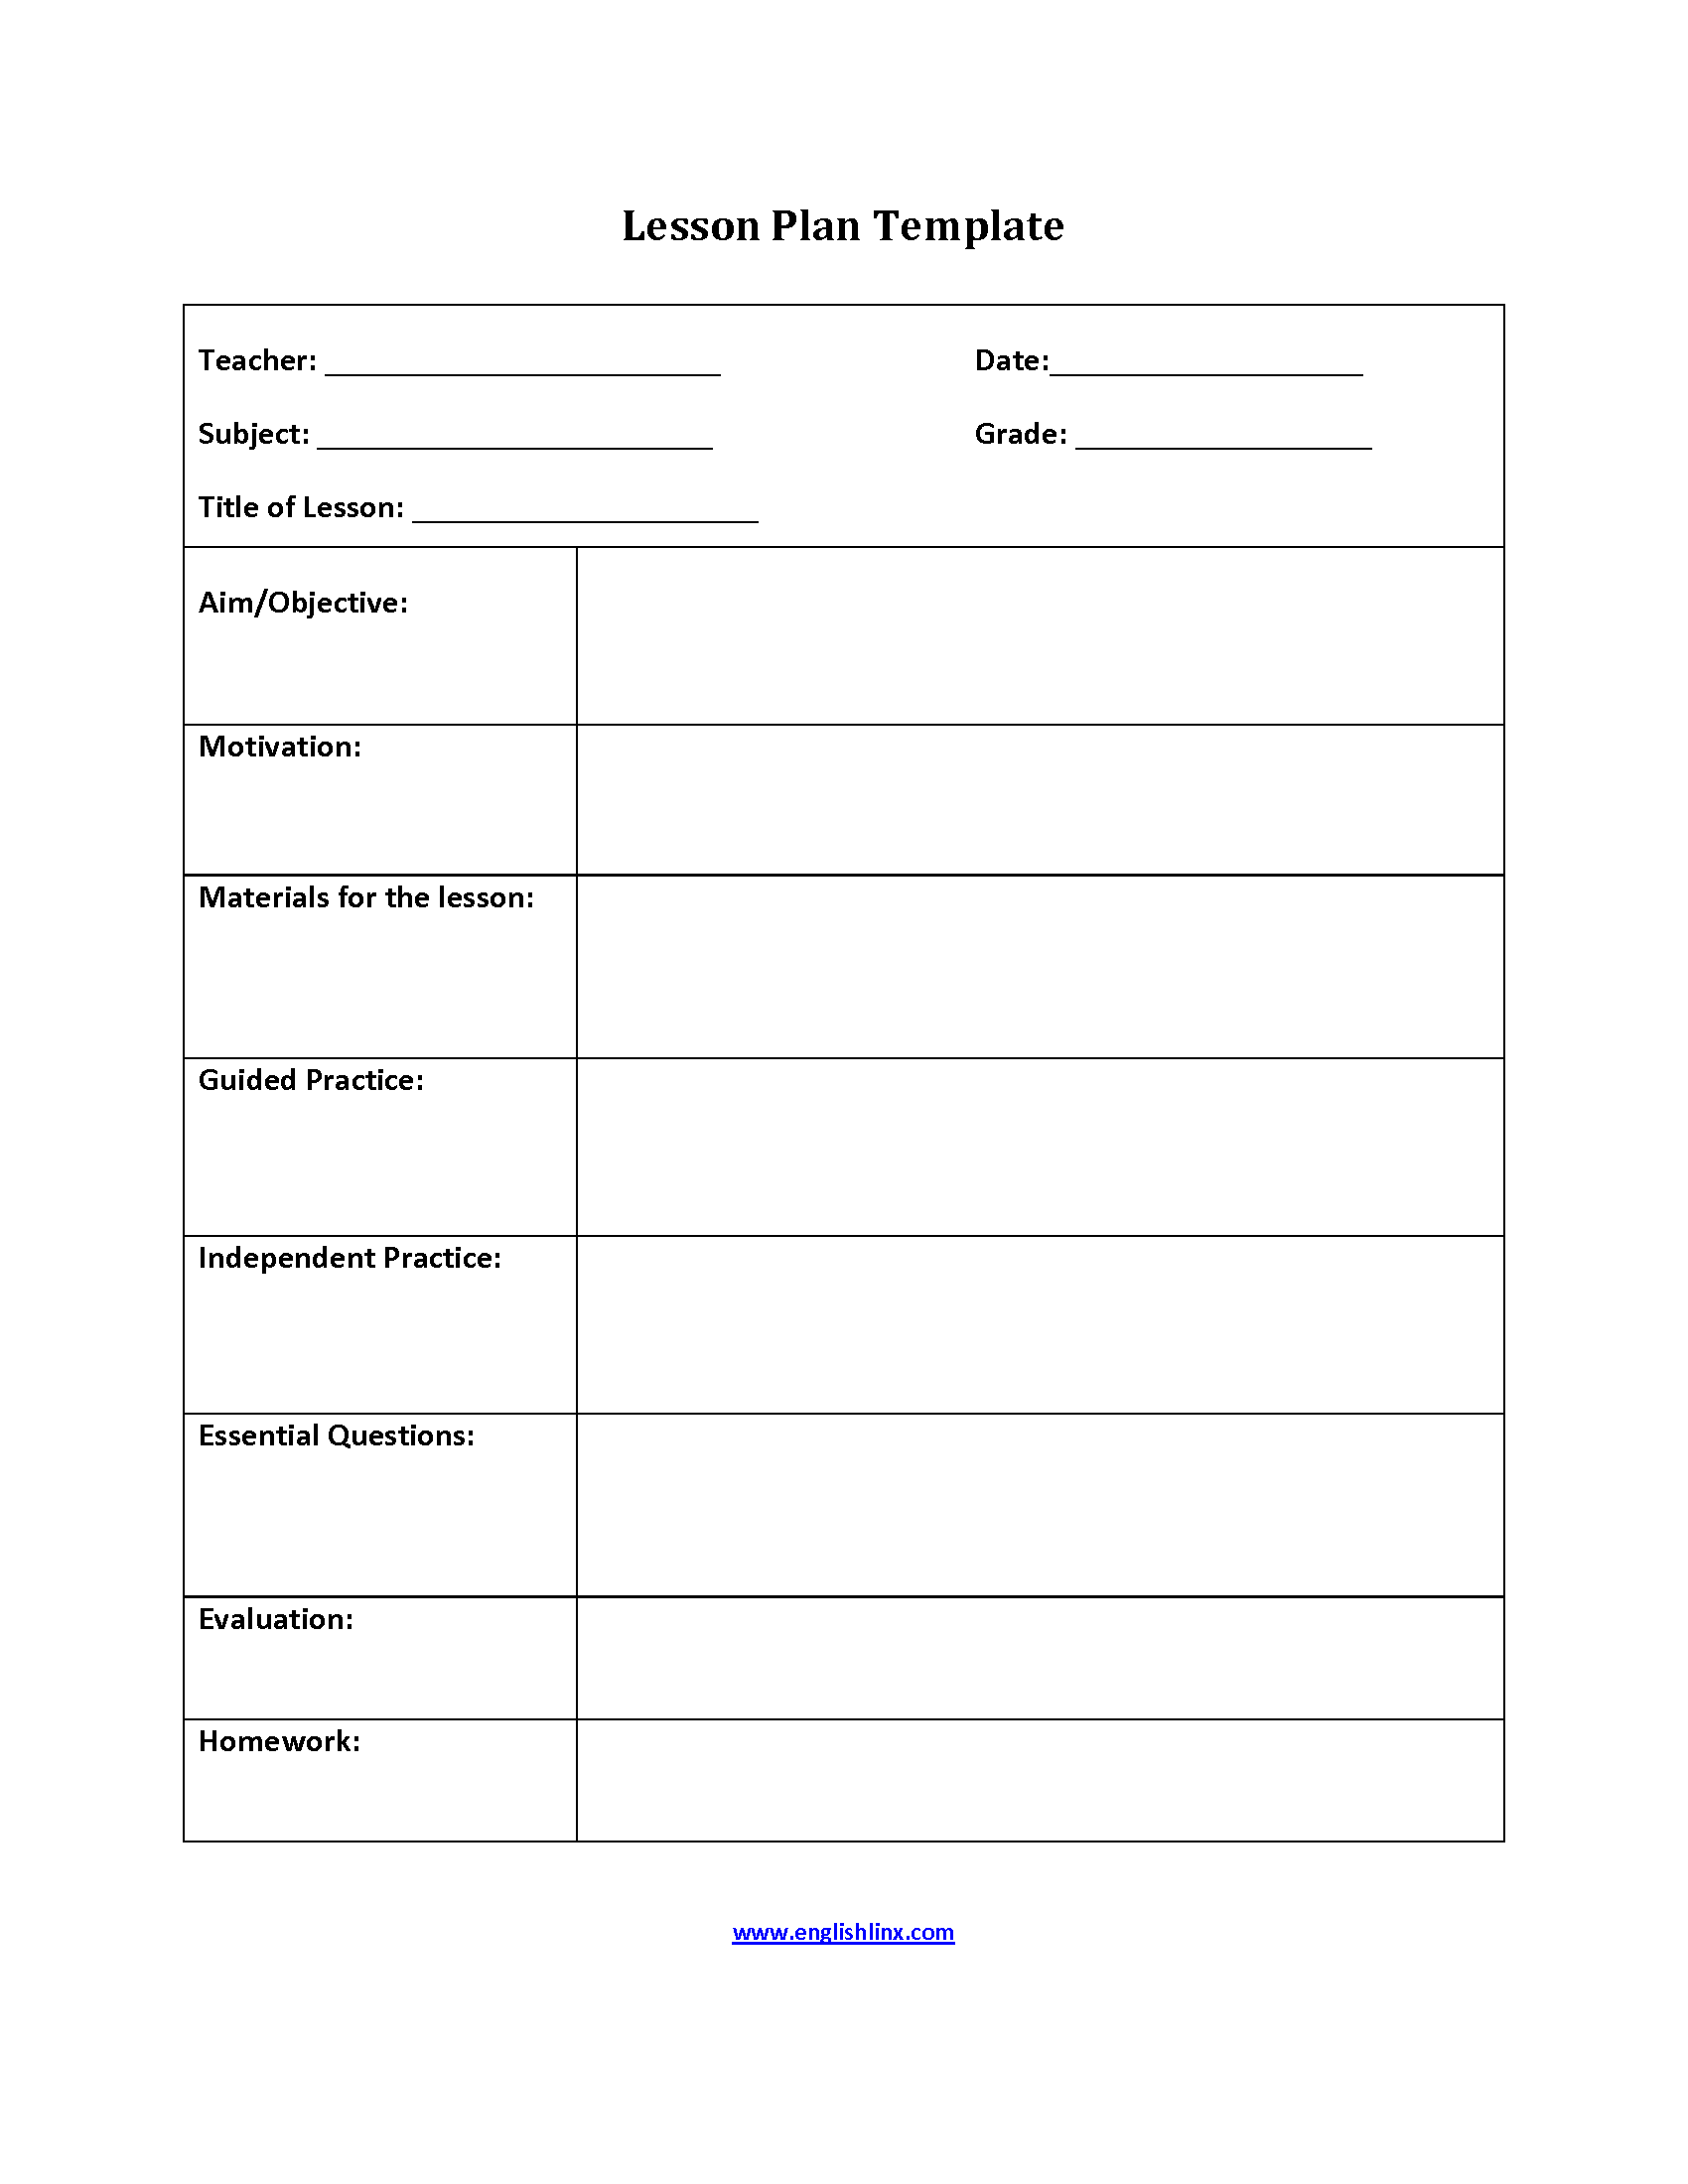 Englishlinxcom Lesson Plan Template - Free guided reading lesson plan template